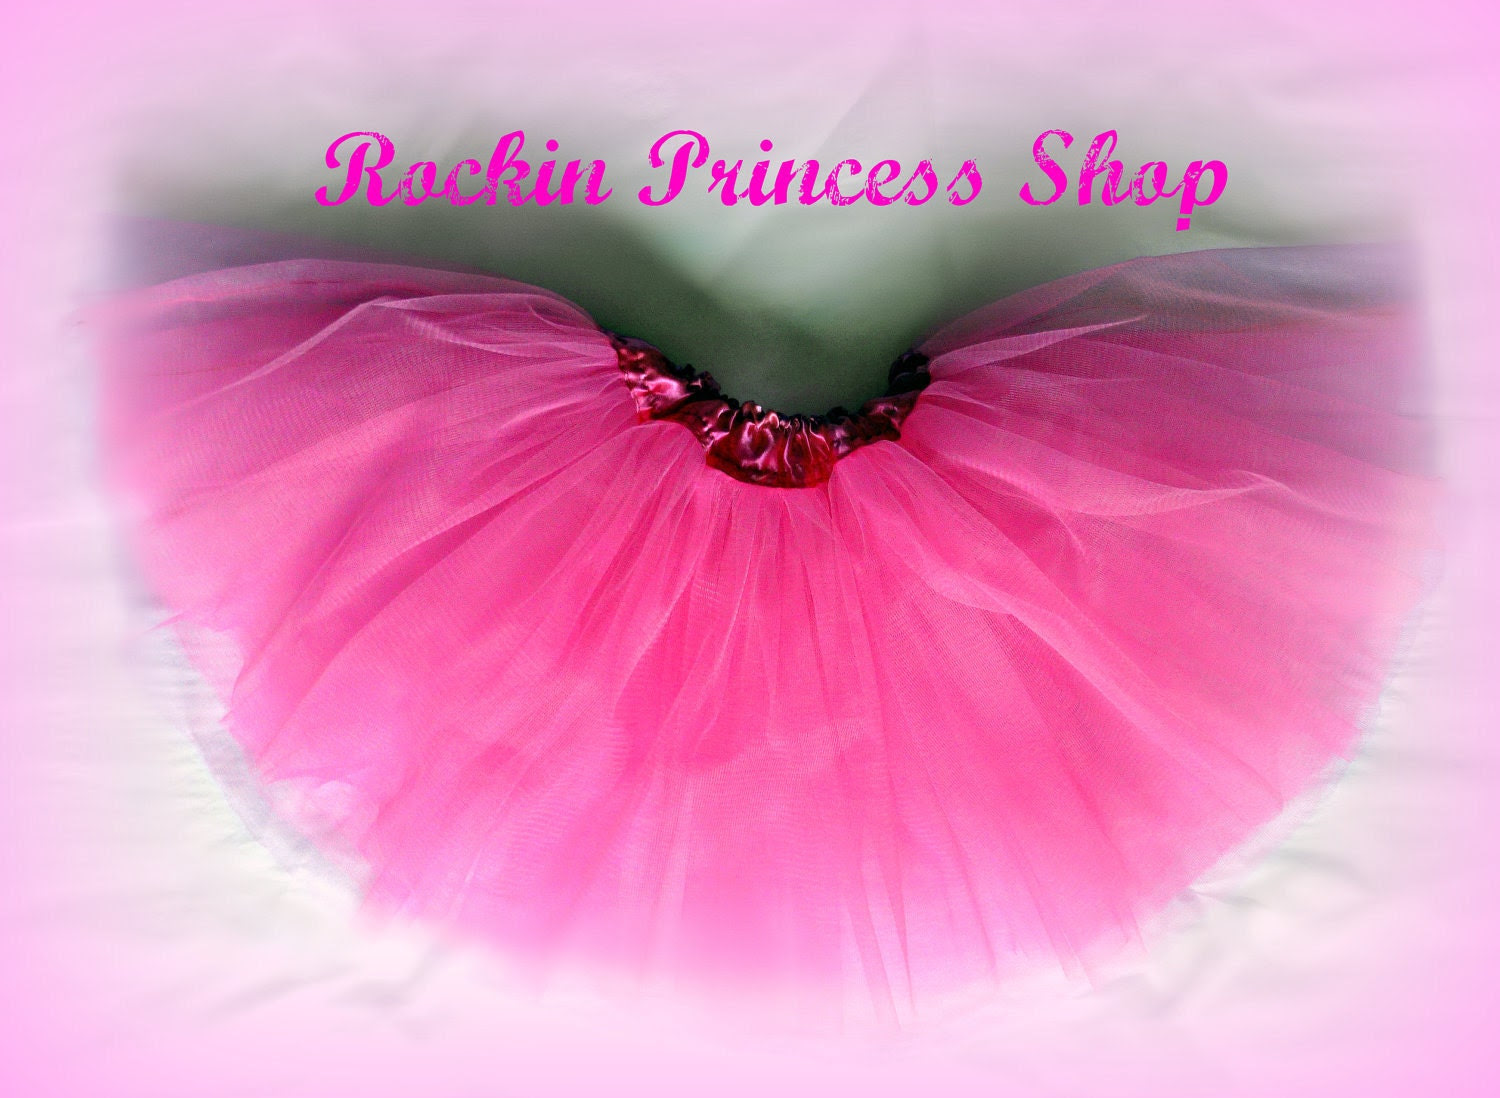 Tutu - 10 Colors to Choose From -Great for Ballet, Dance, Costume Party or Pictures